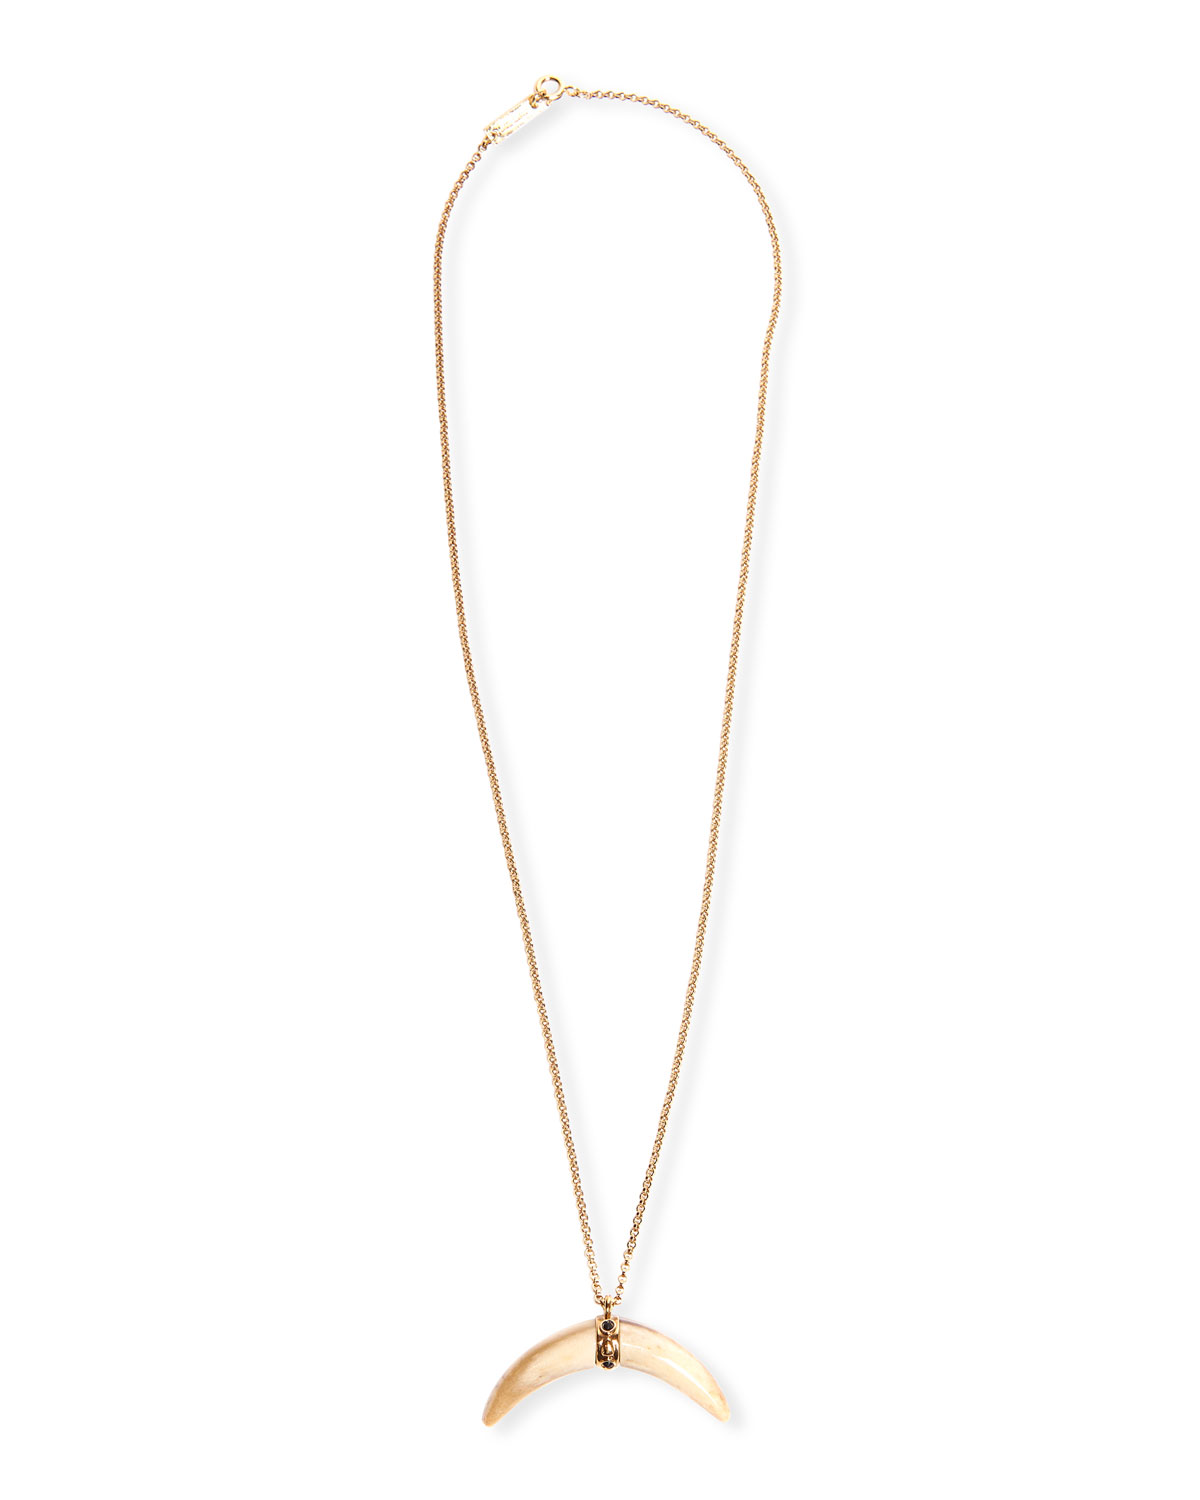 Etoile Isabel Marant Accessories HORN PENDANT NECKLACE